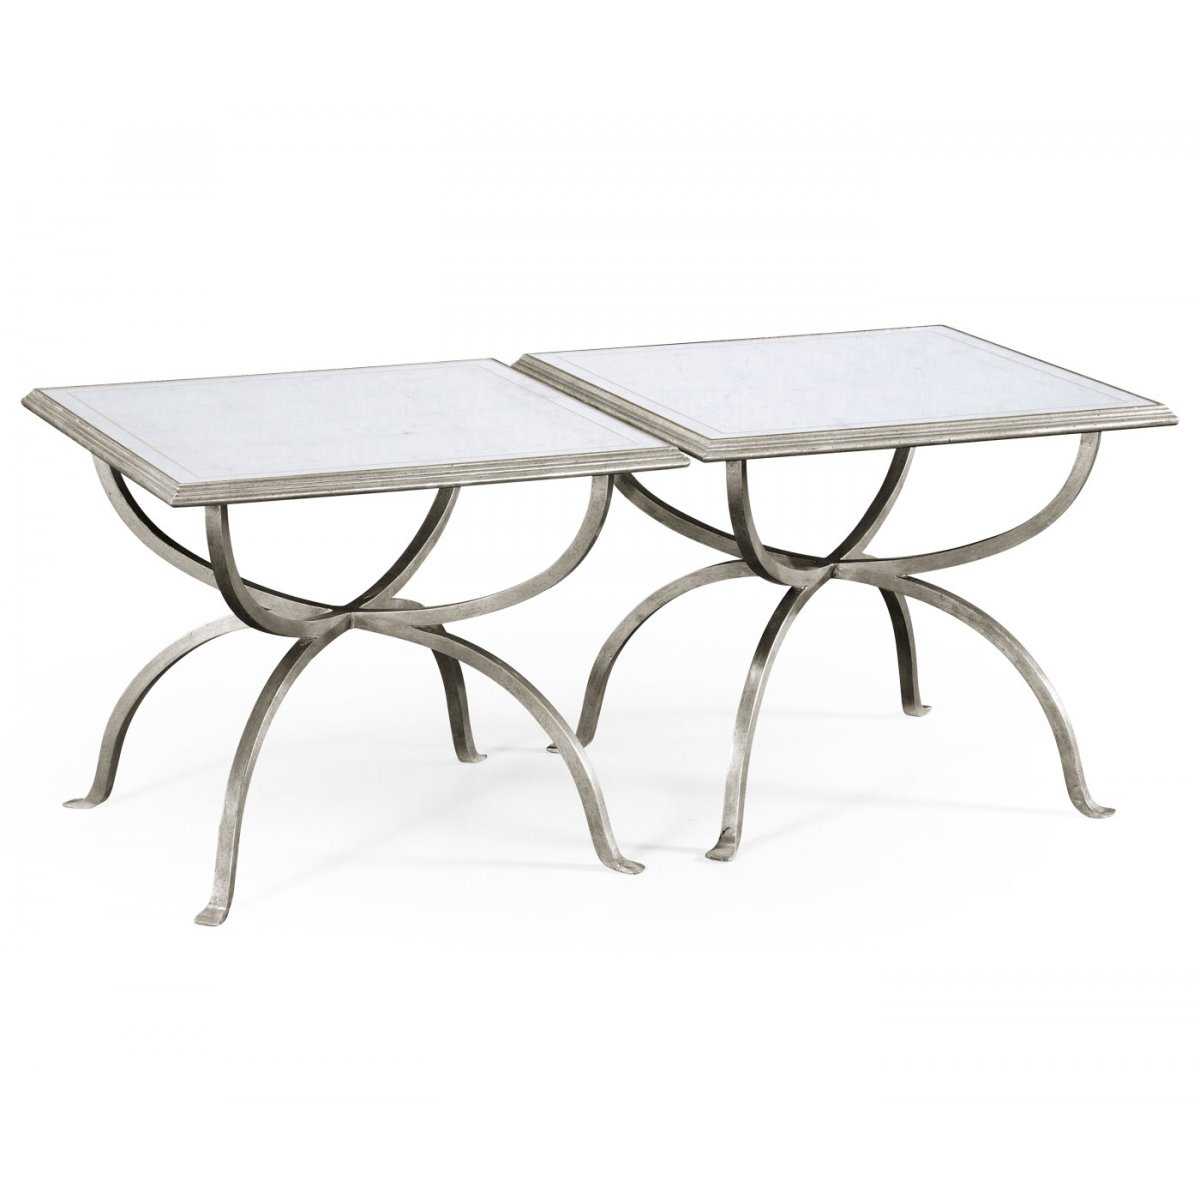 Silver Glass Coffee Table Set: Set Of 2 Silver Glass Coffee Tables